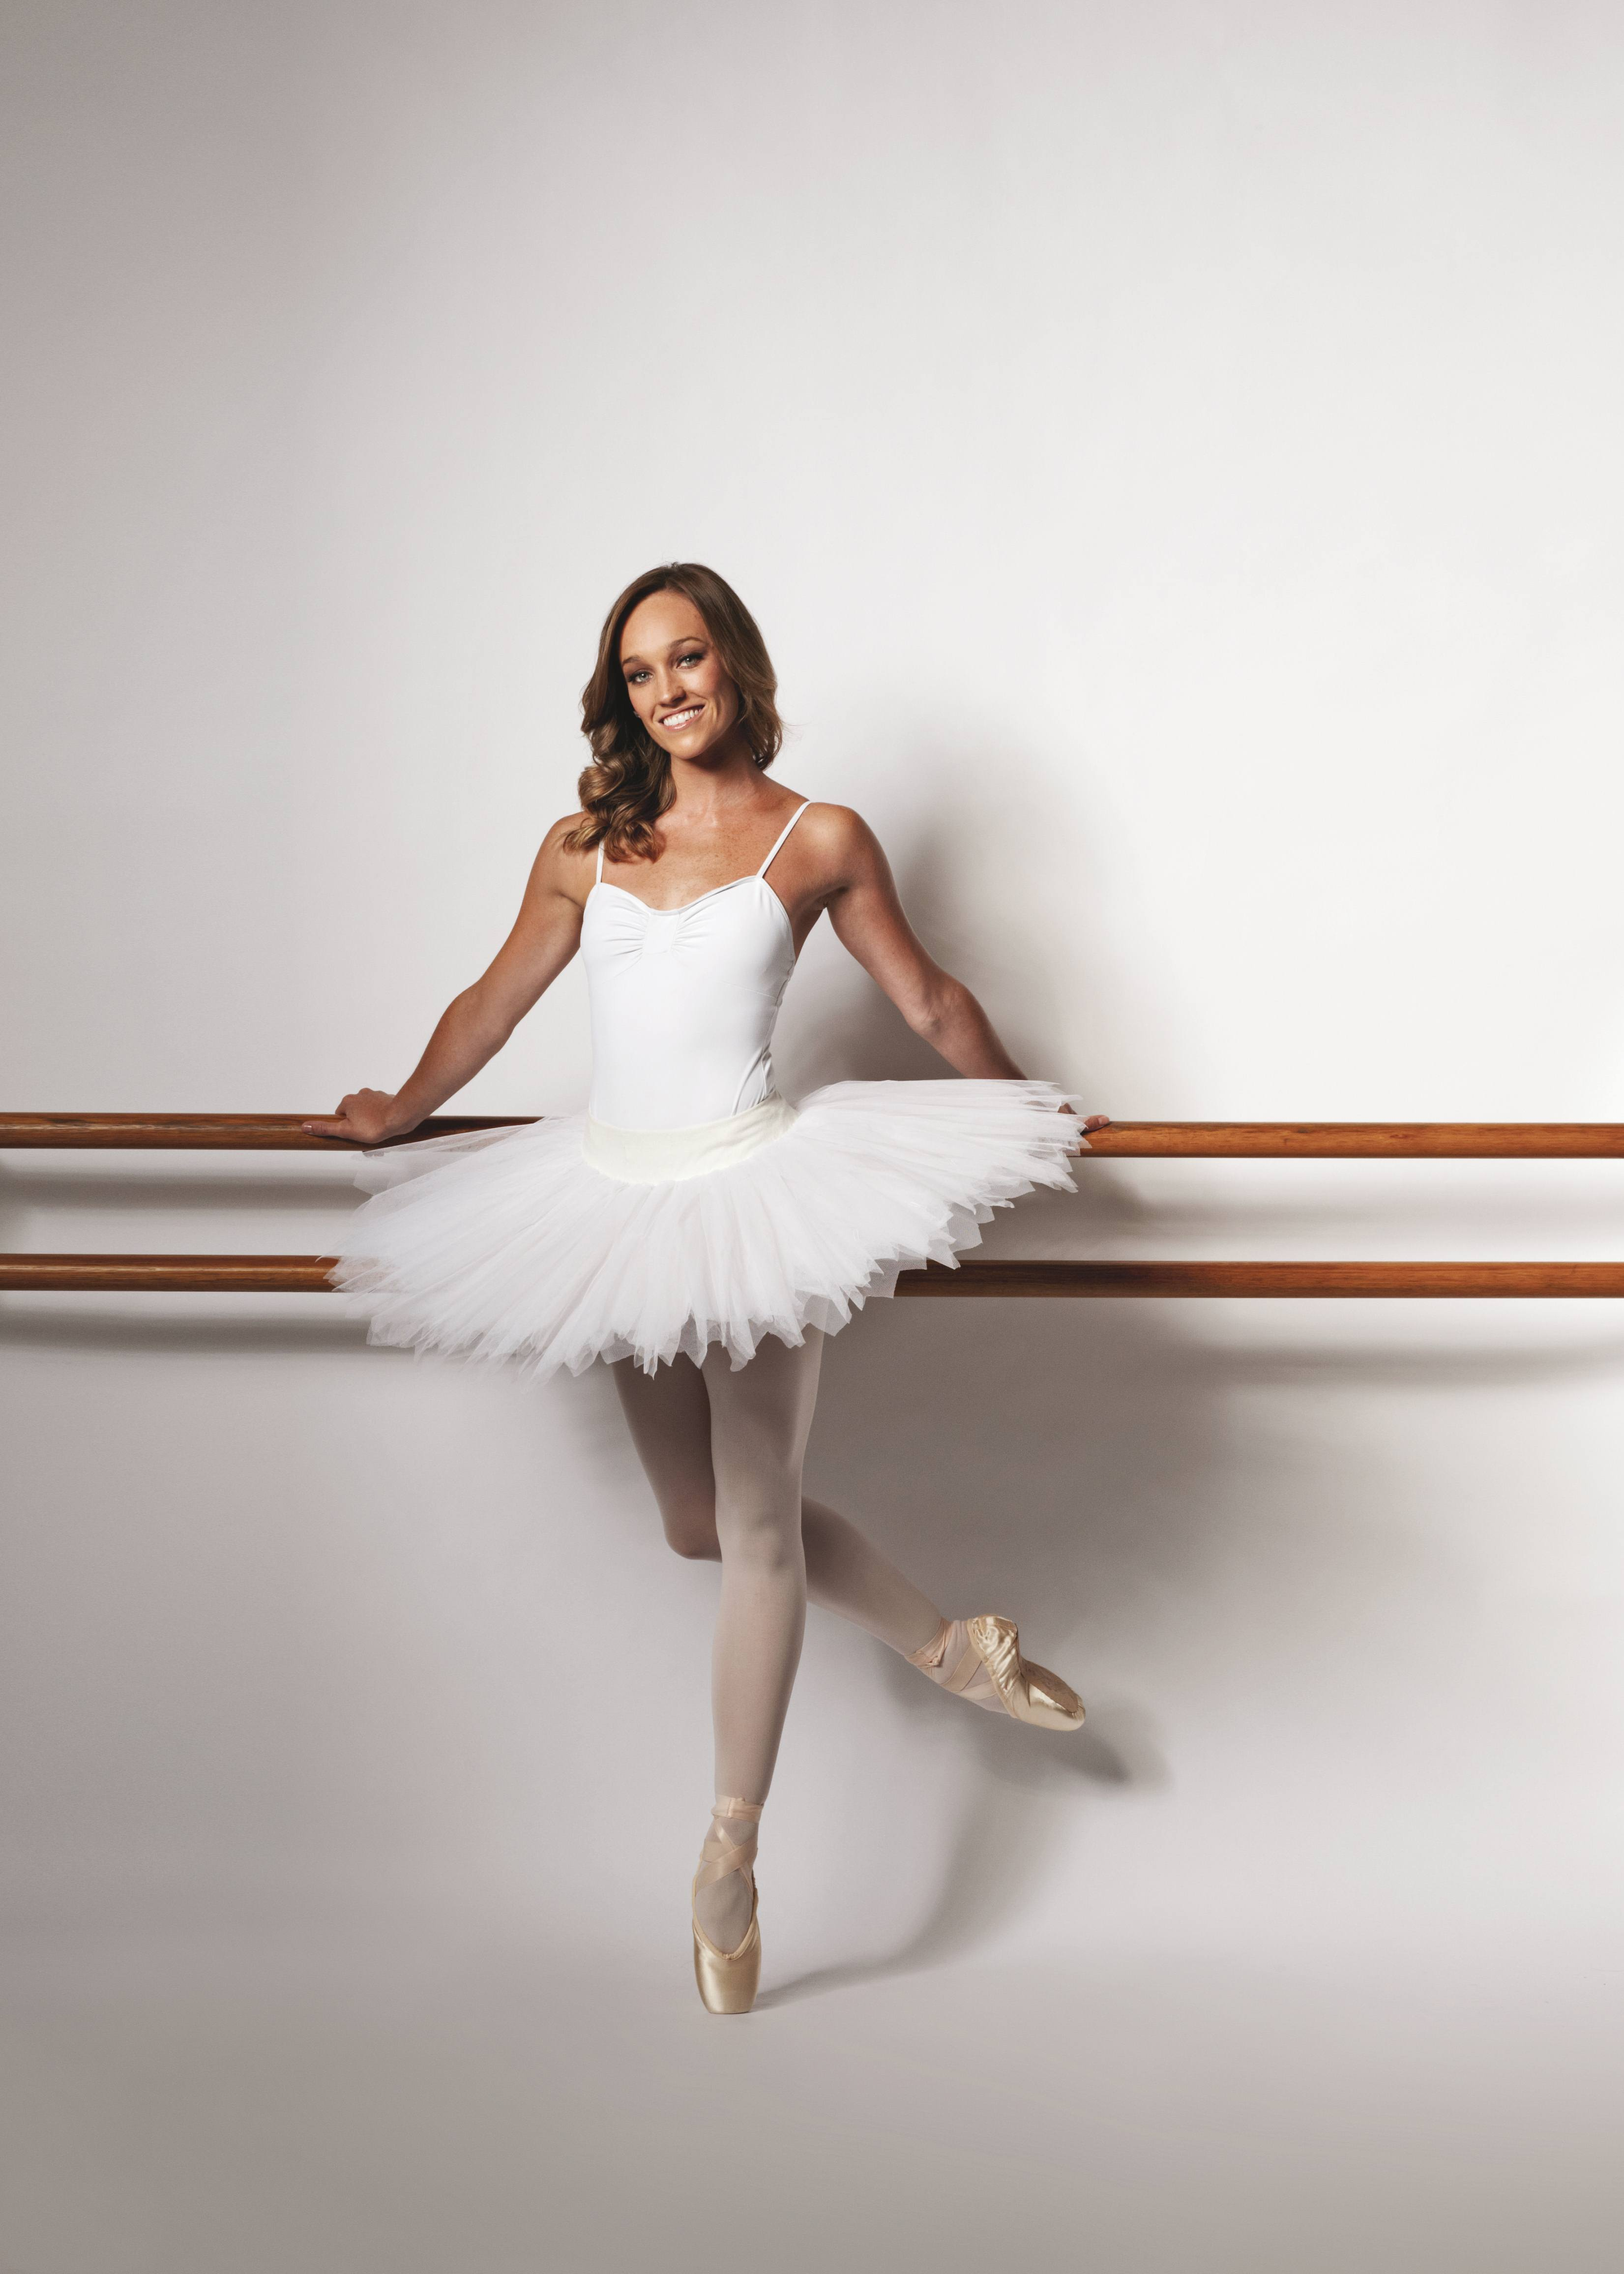 ballet dancer stands at the barre in white tutu